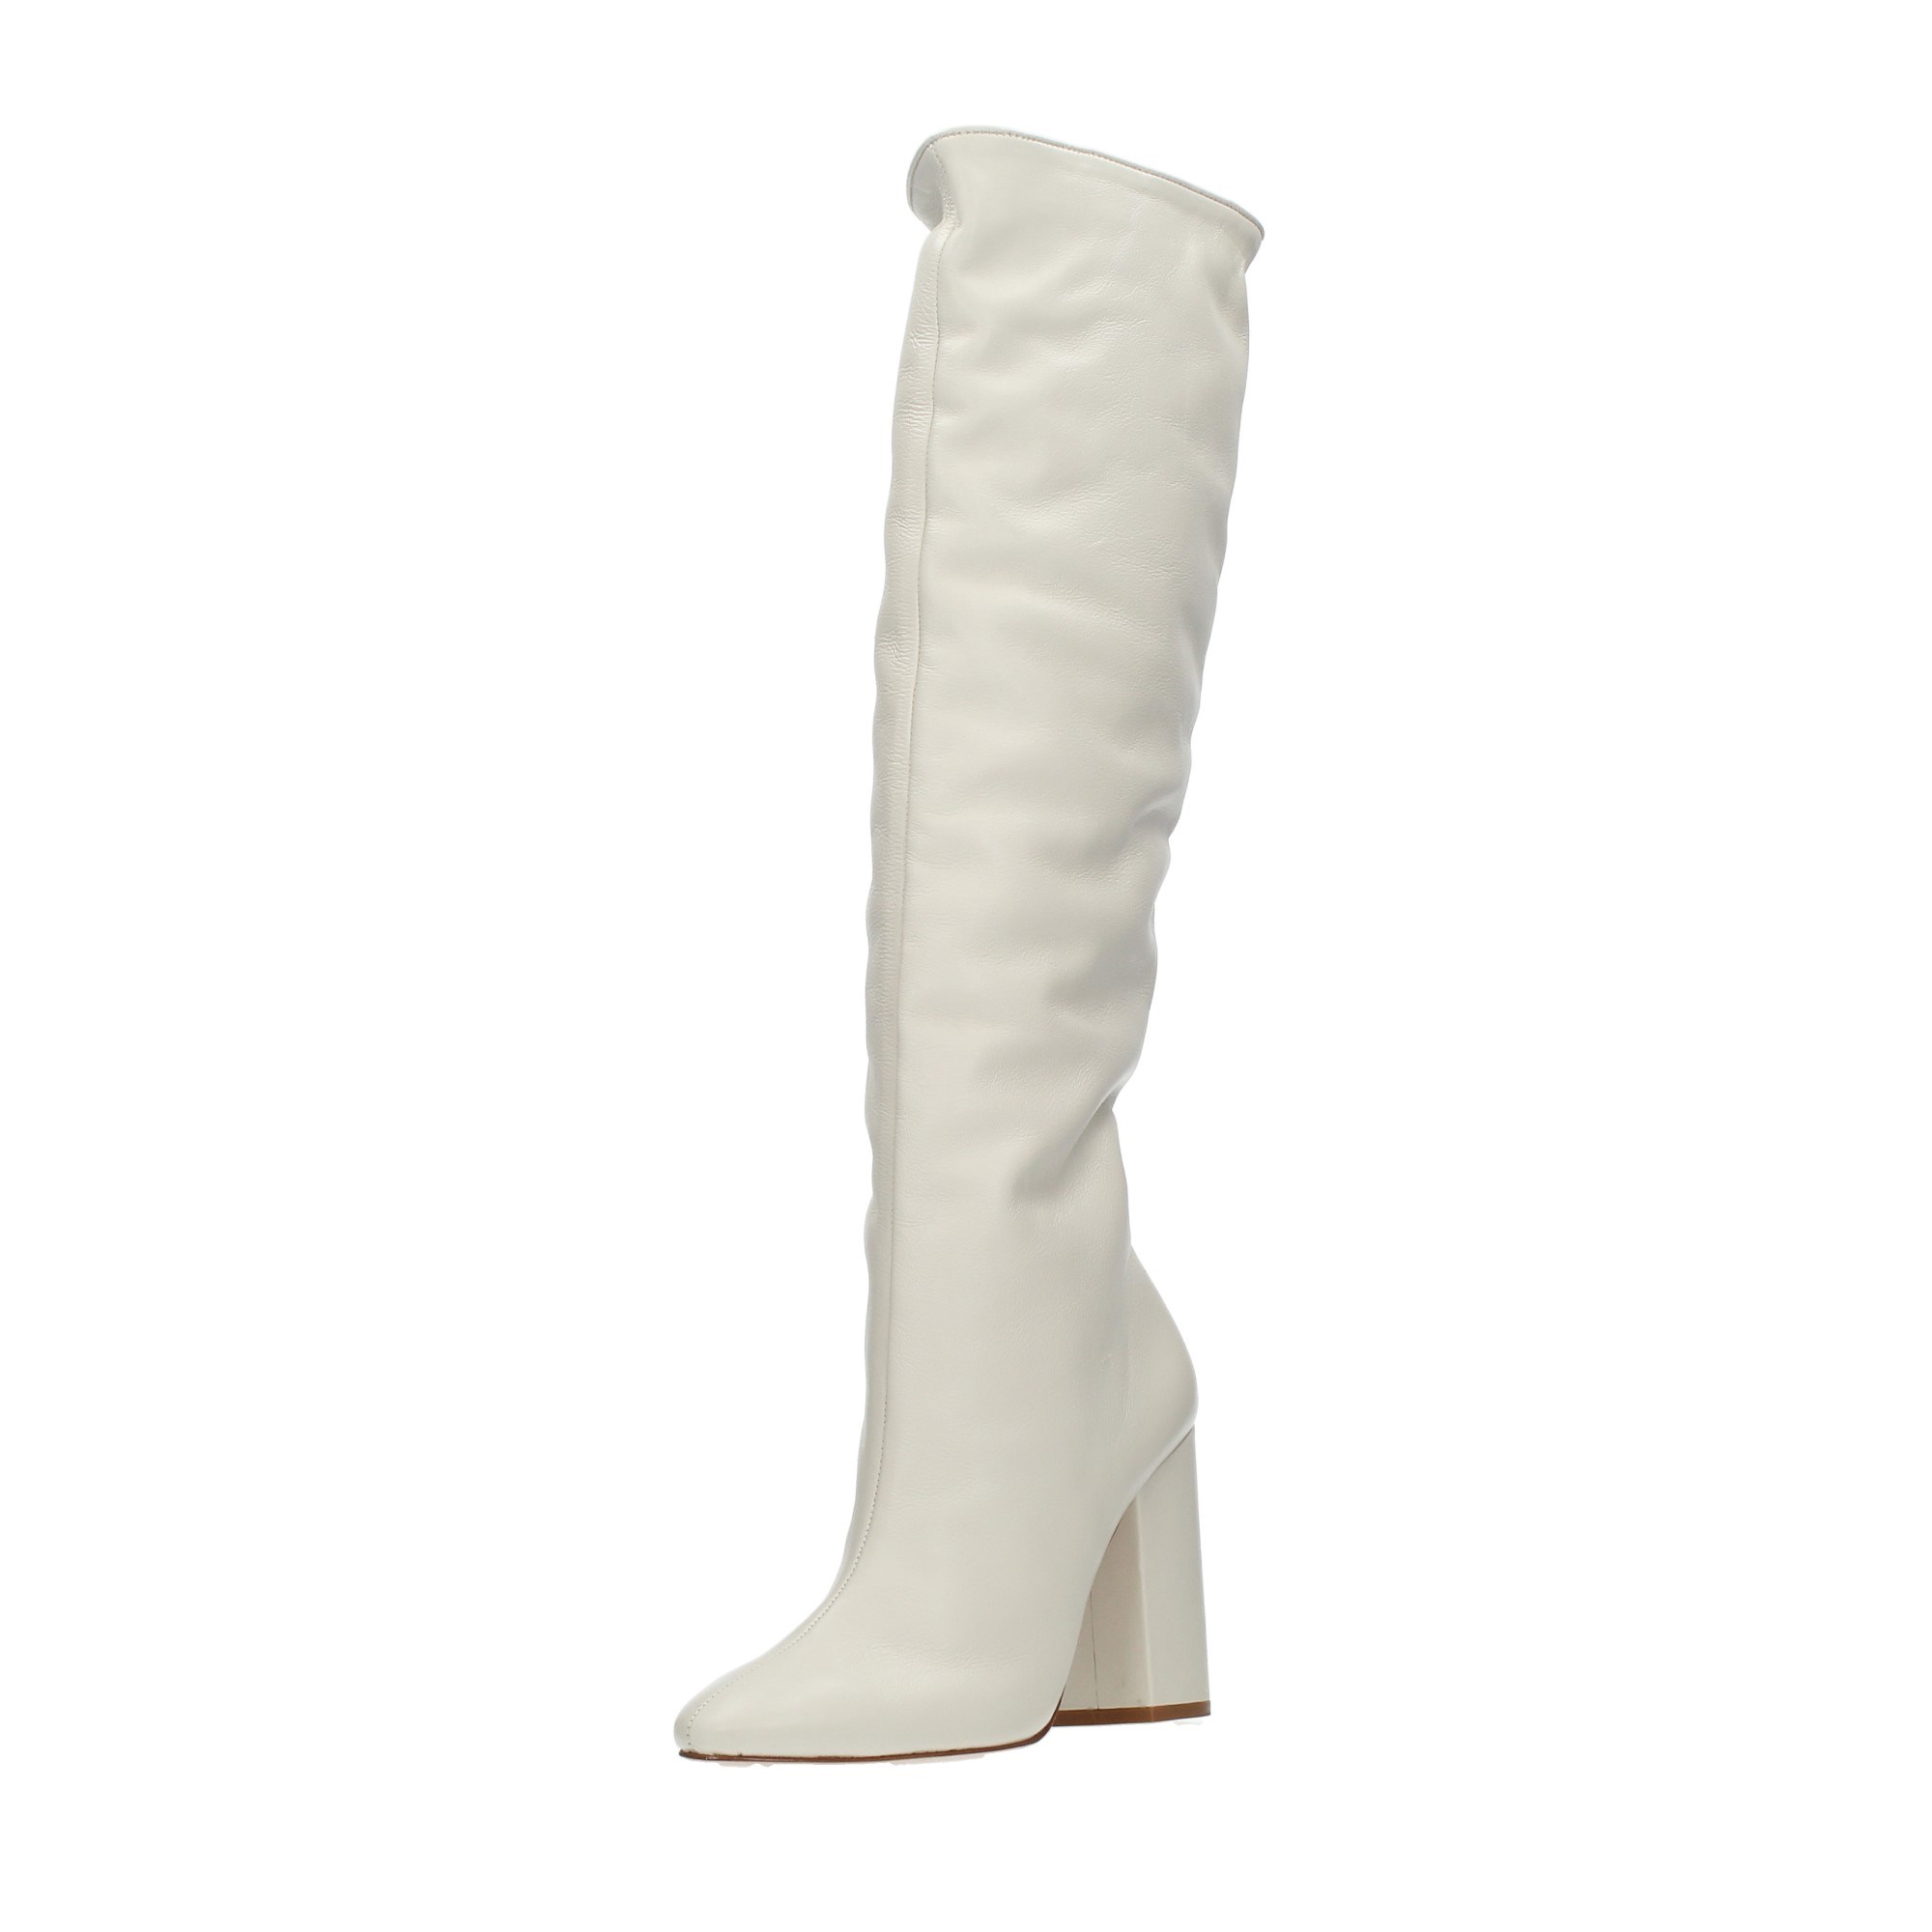 Schutz Shoes Women Boots White S206910010003